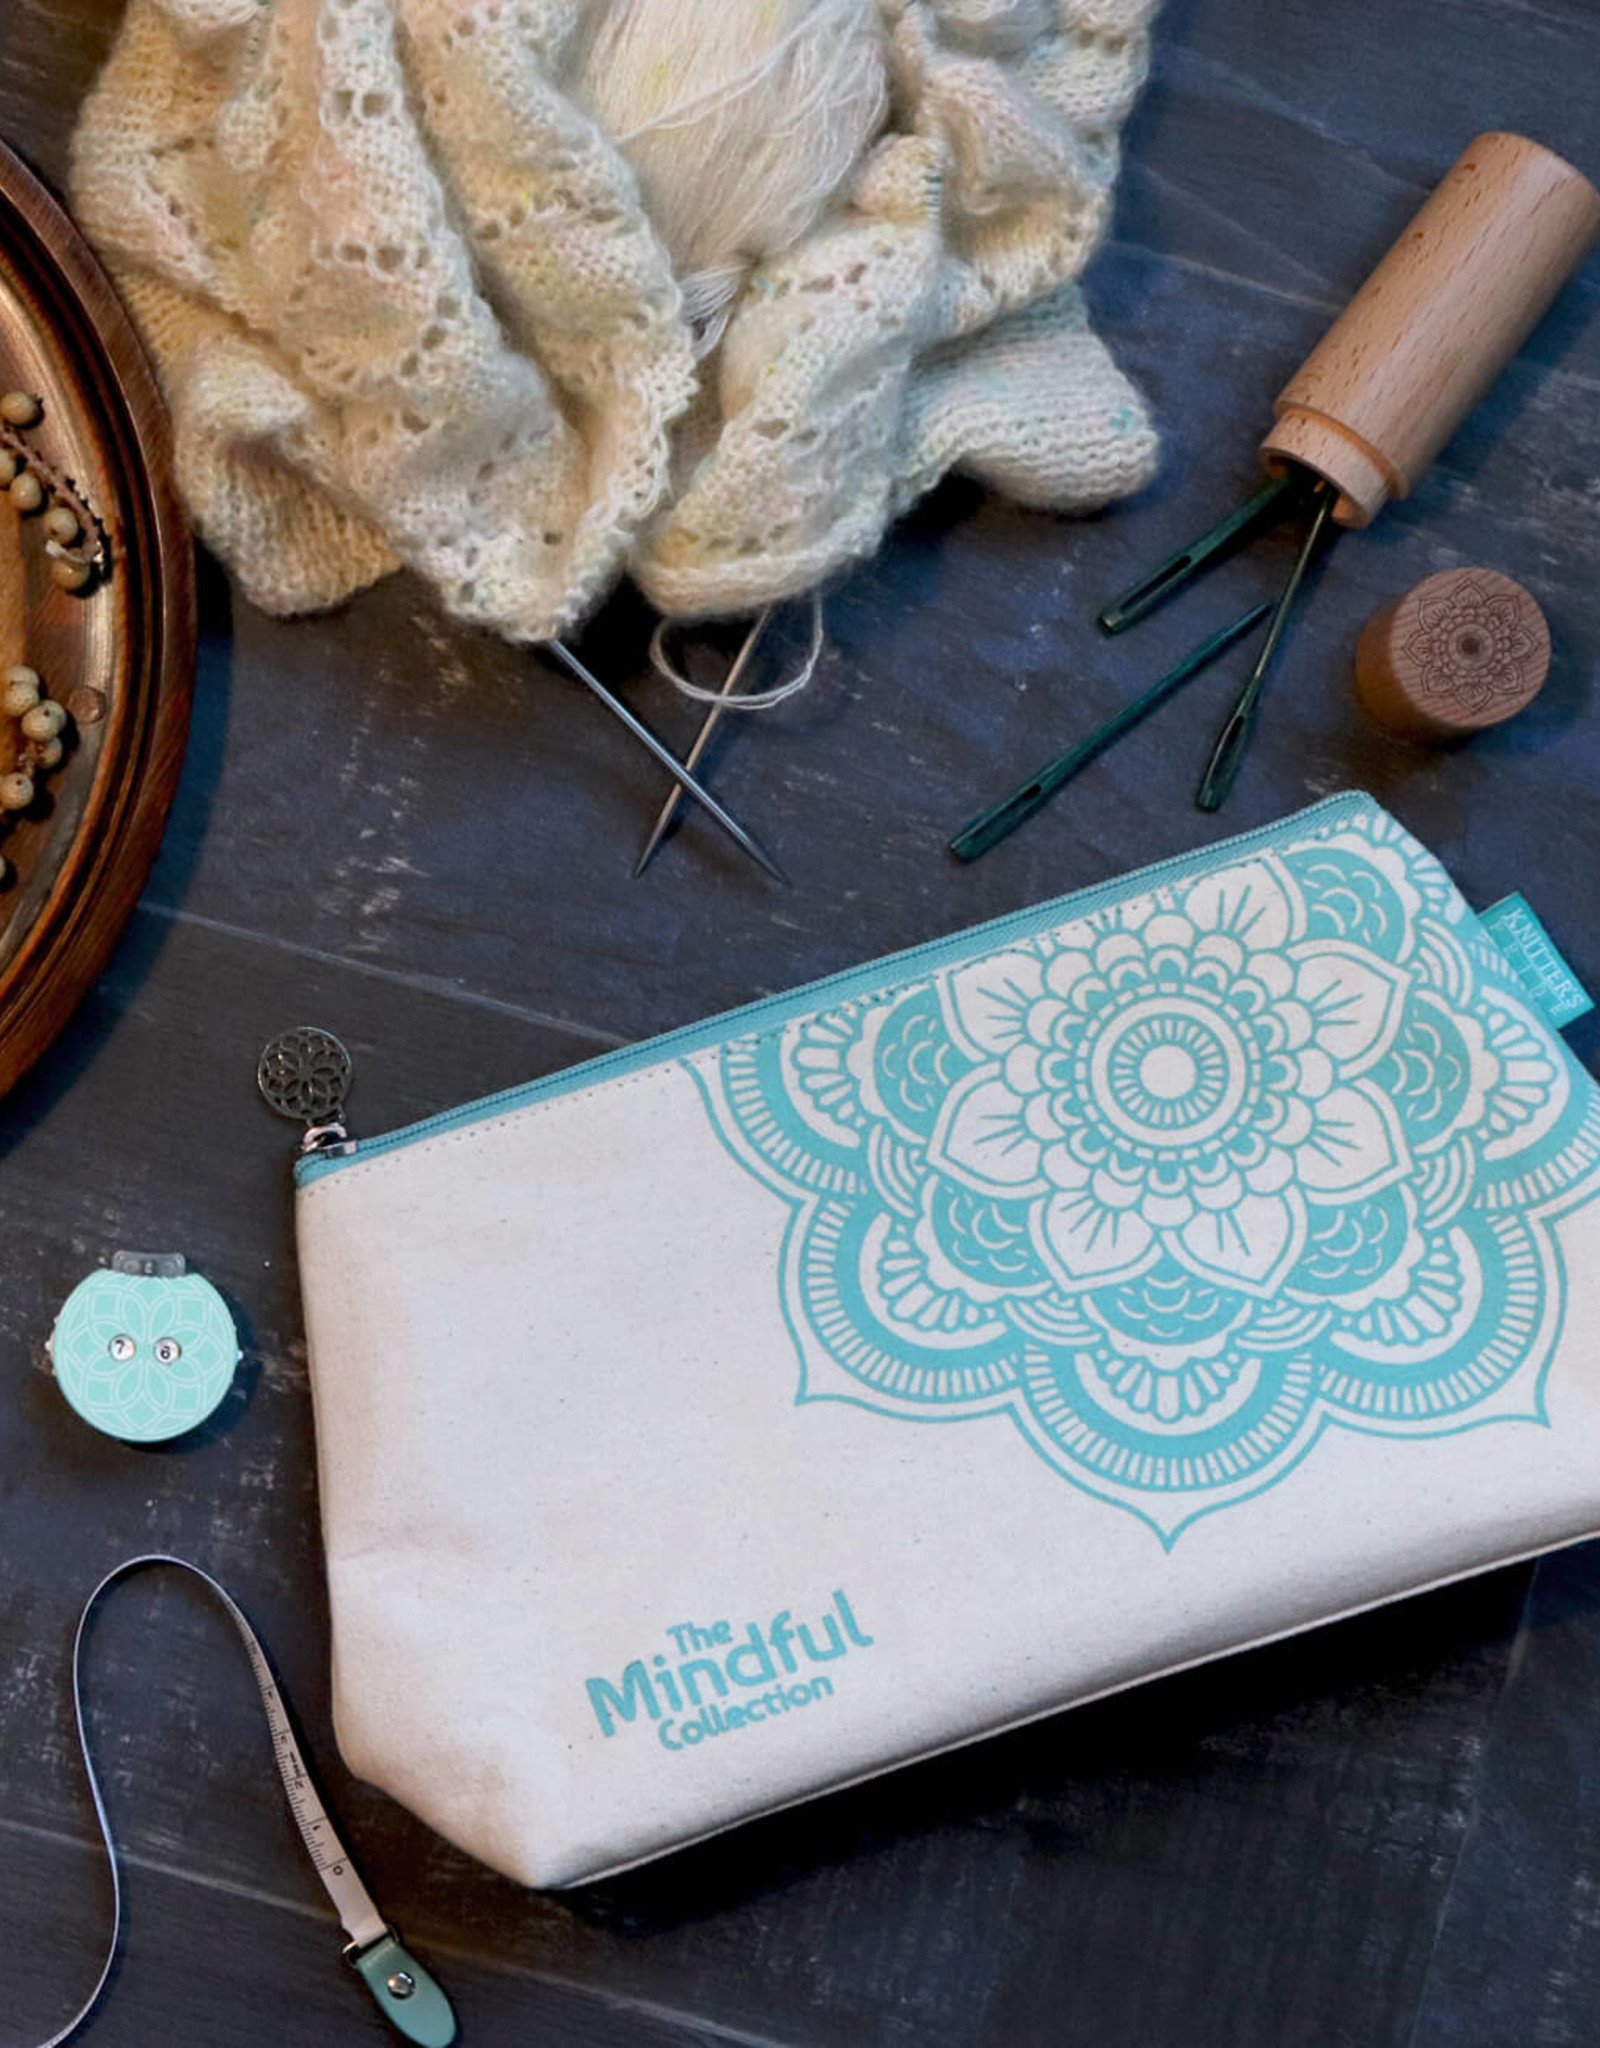 Knitters Pride Mindful Project Bag